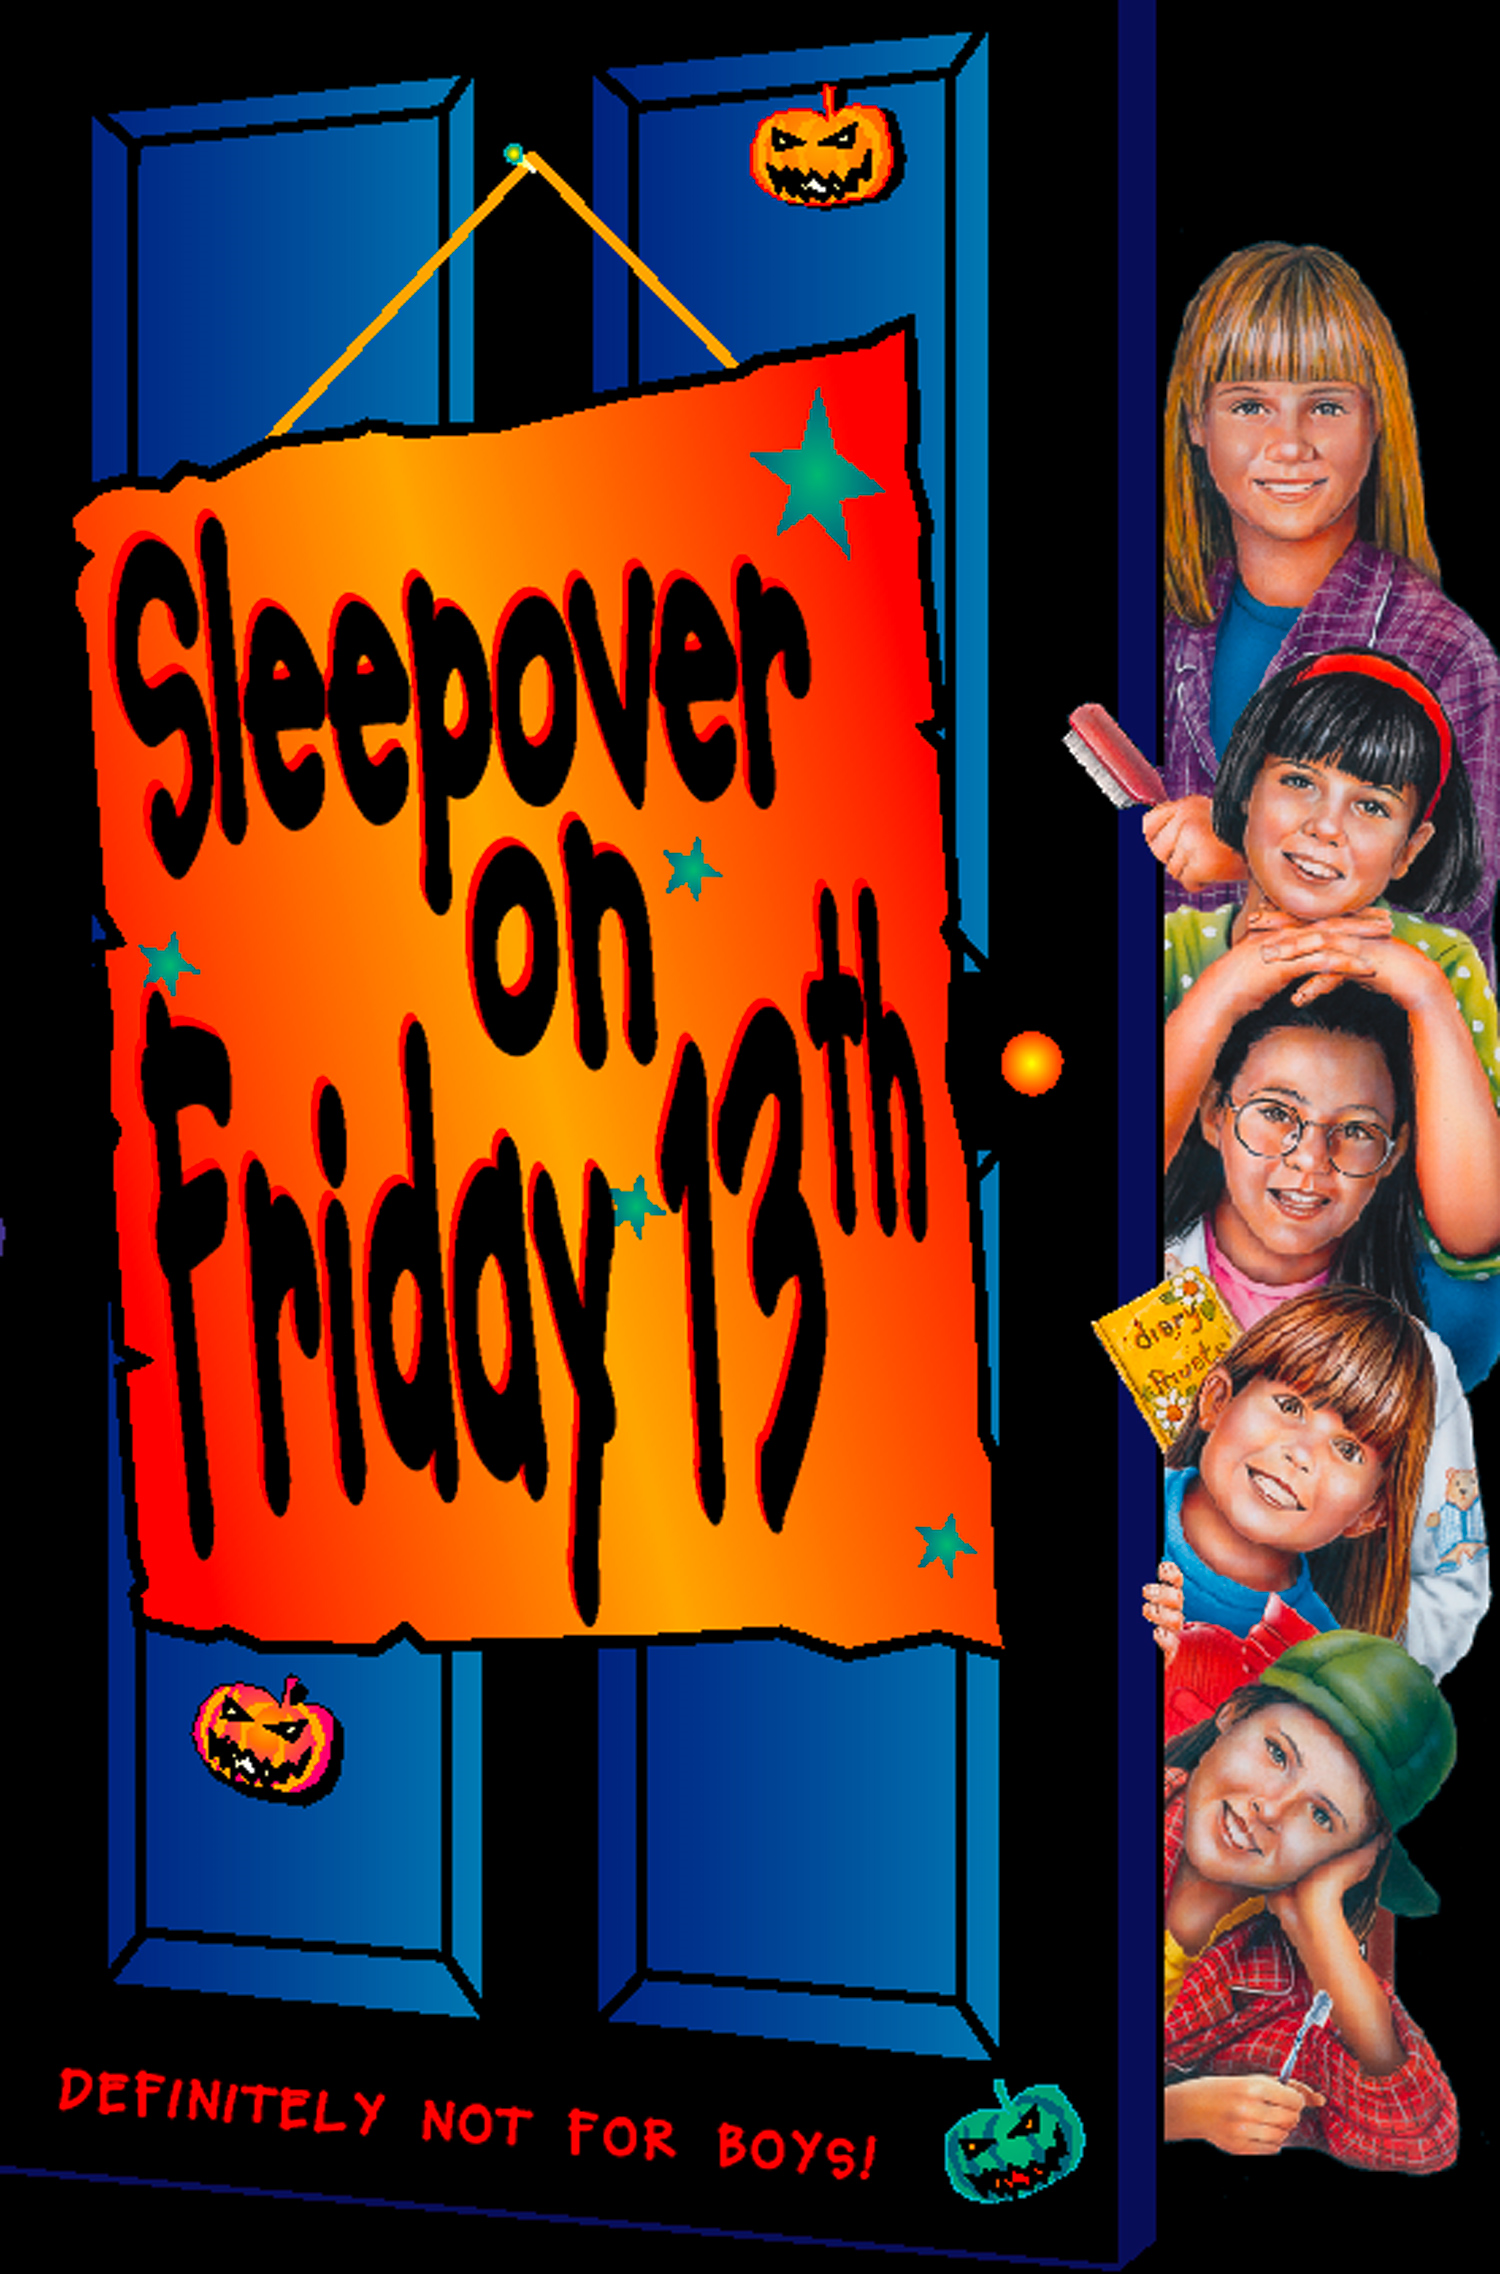 Sleepover Club on Friday 13th (The Sleepover Club,  Book 13)